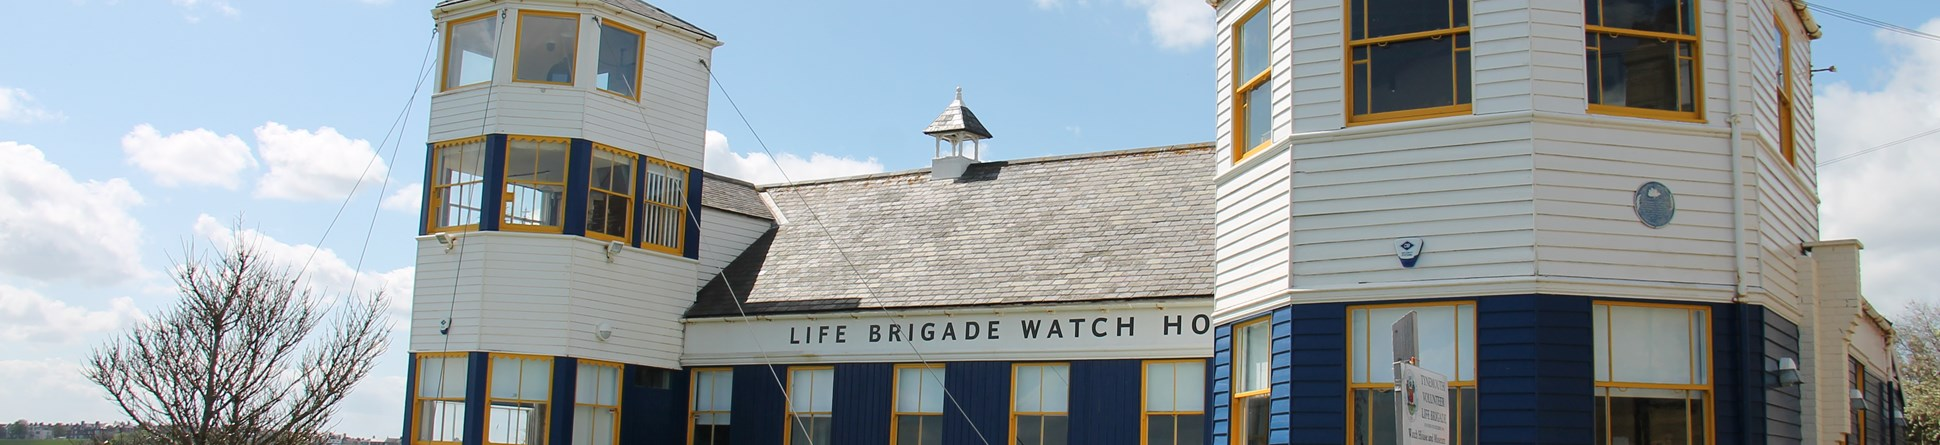 Photo of the outside of the Life Brigade Watch House - a white wooden building with blue and yellow painted windows.